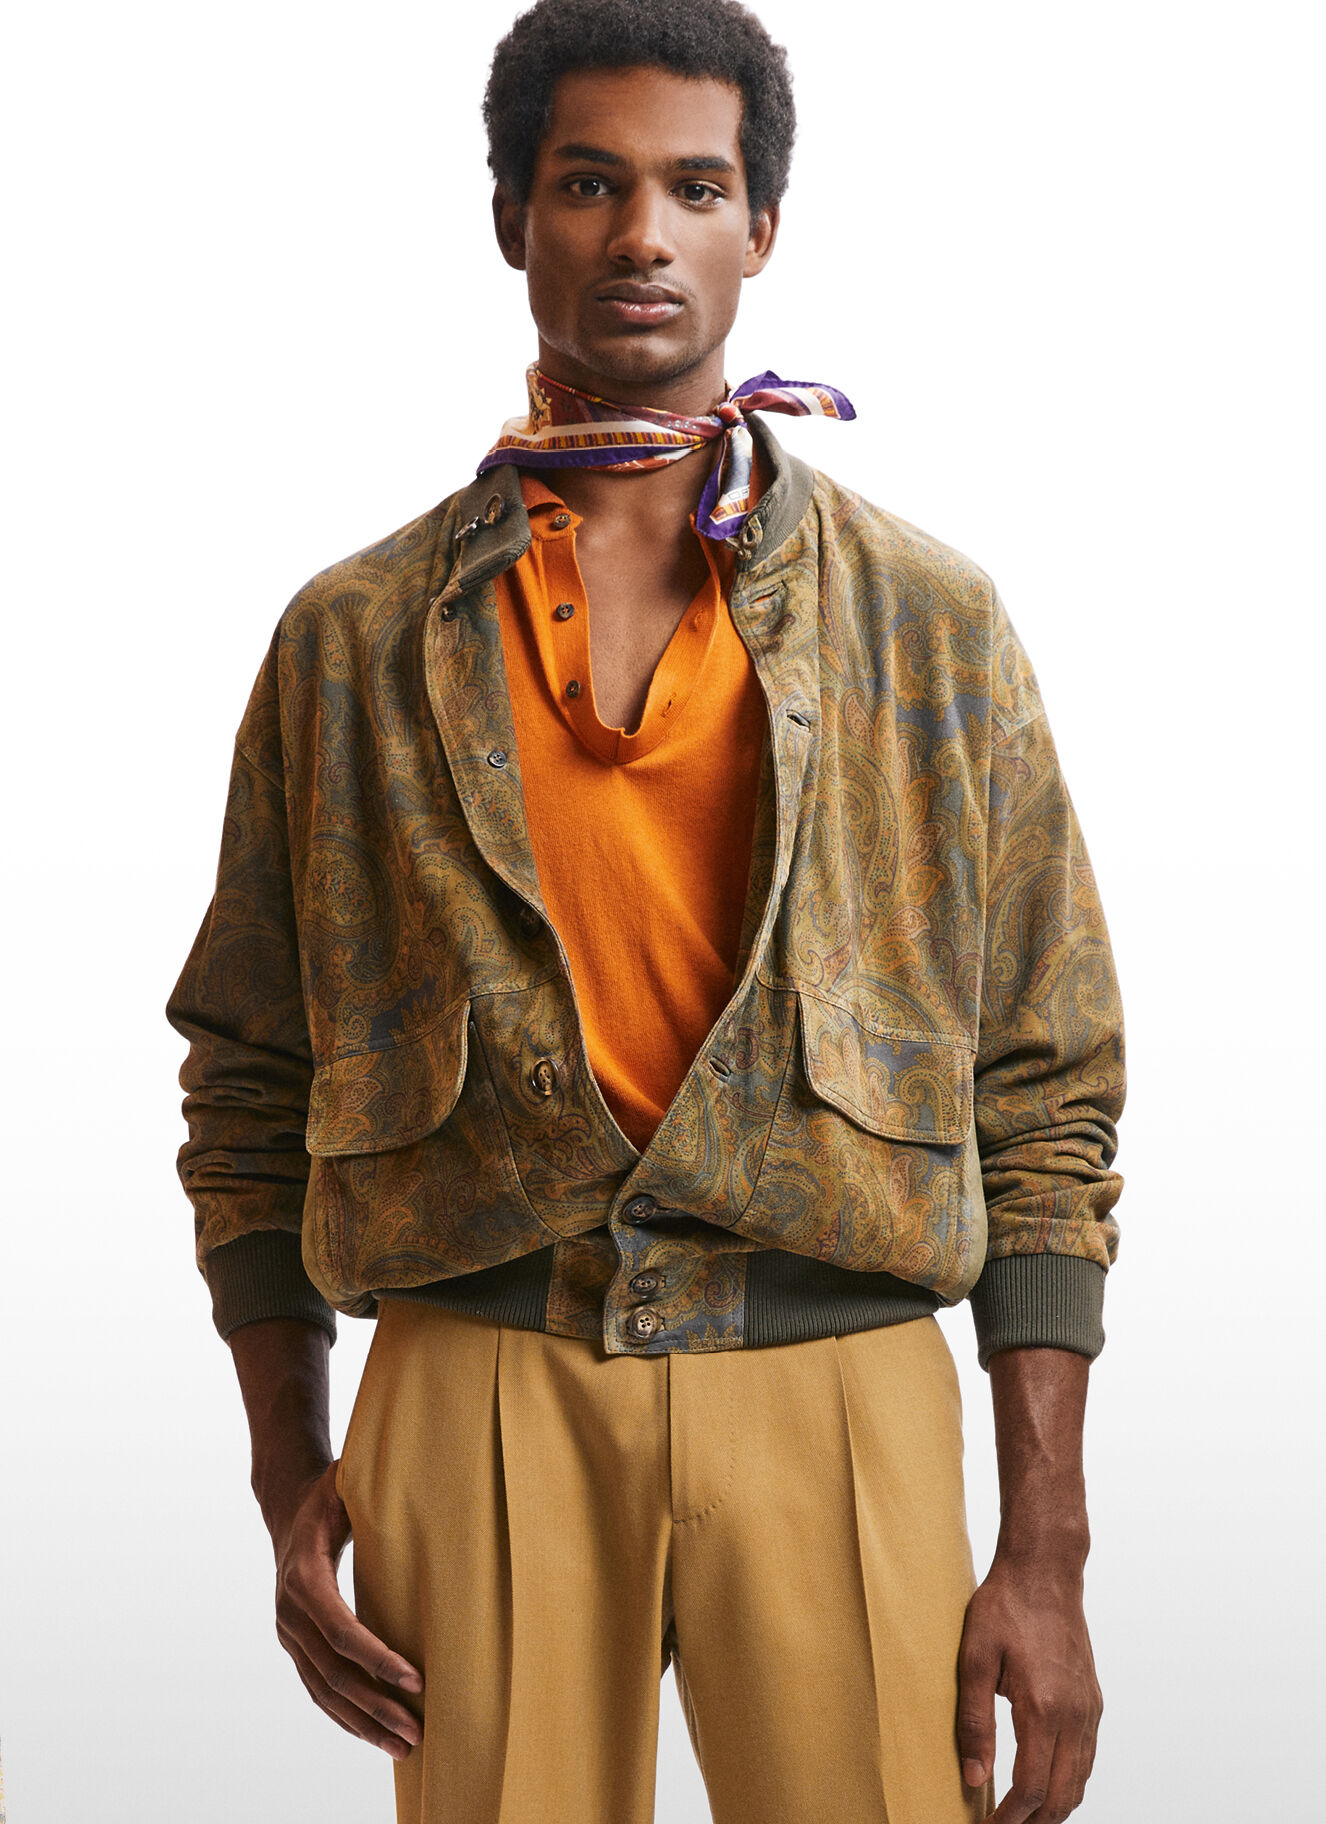 ETRO_SS21_Unisex_Catalogue_45